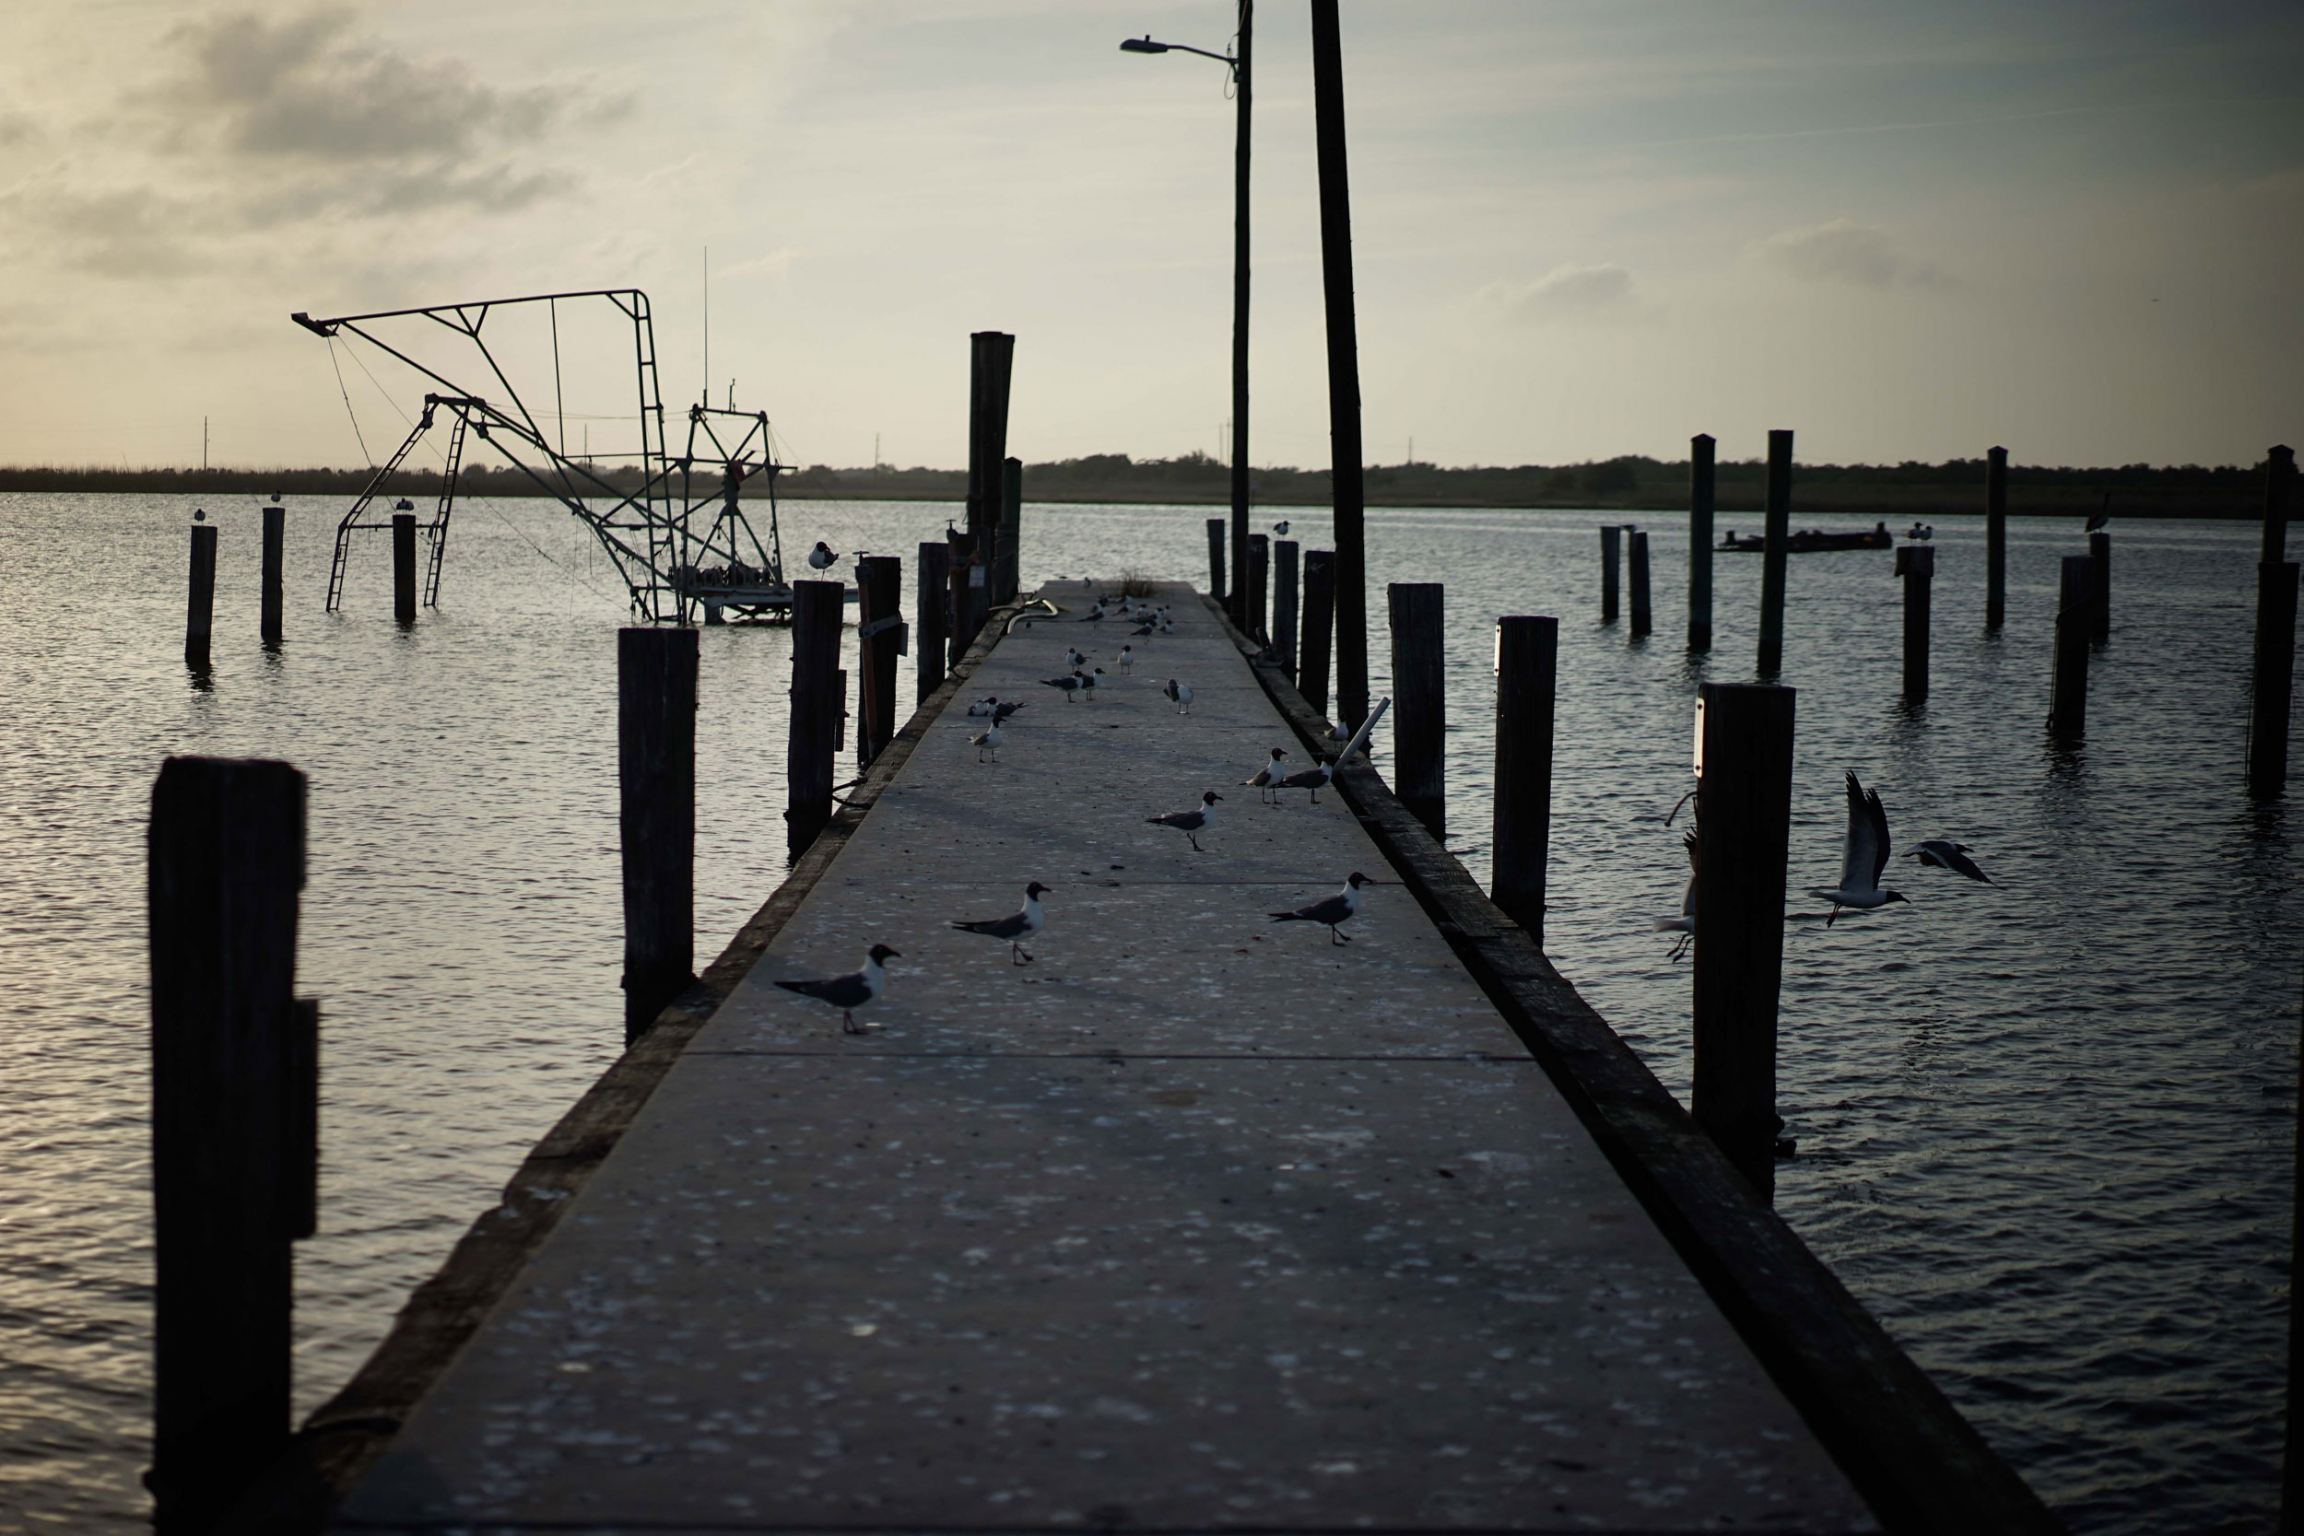 An older dock is shown extending out into the Mississippi River.